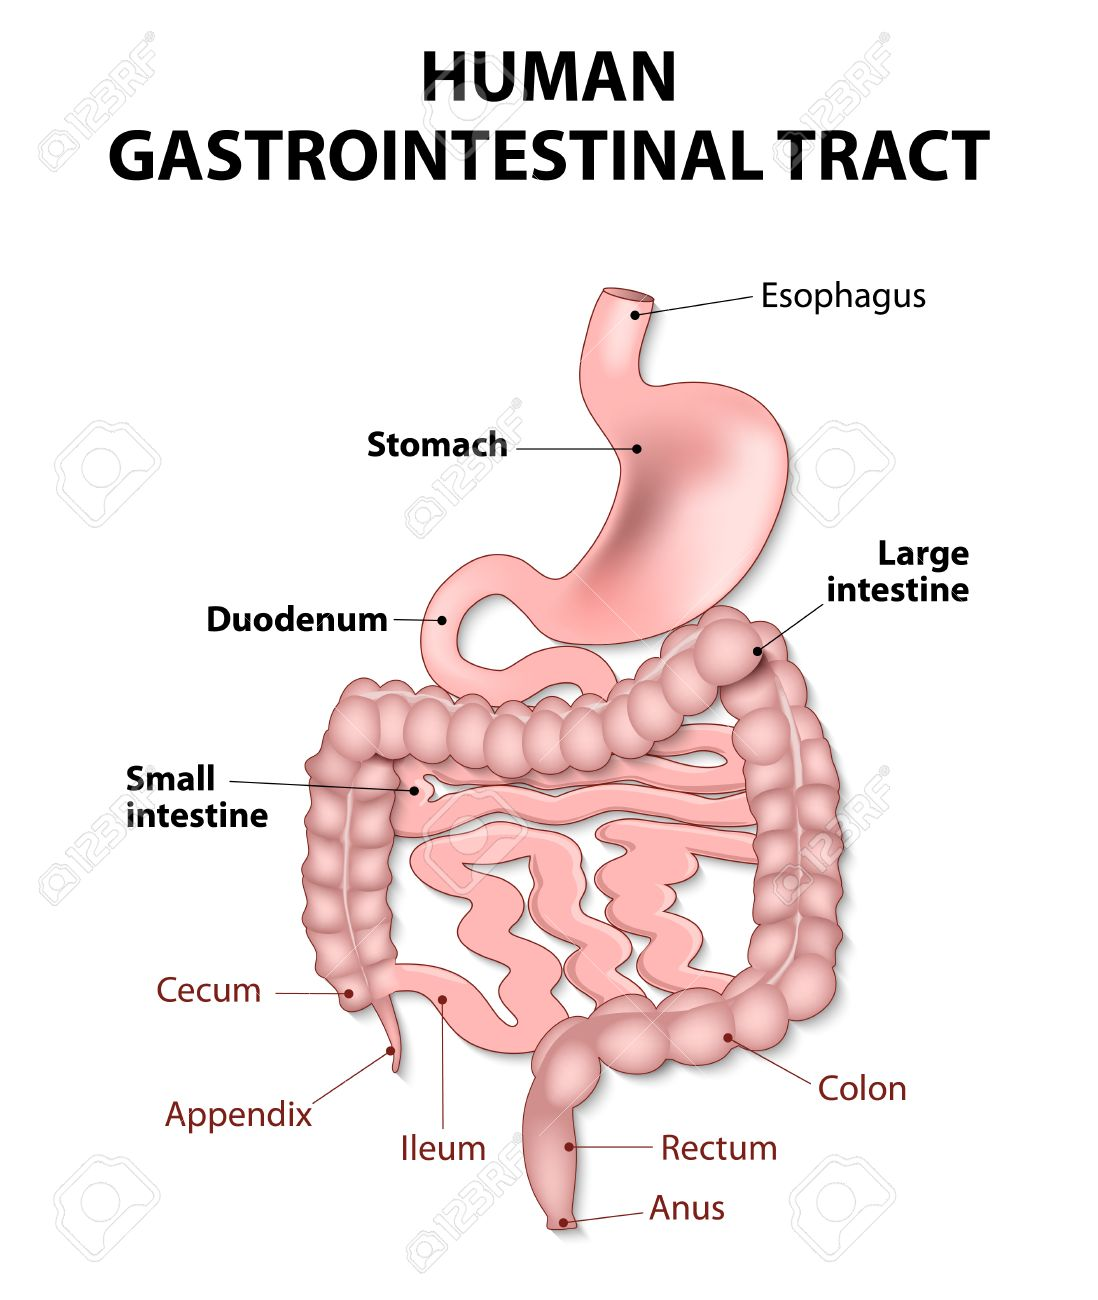 Gastrointestinal Tract Includes All Structures Between The Esophagus